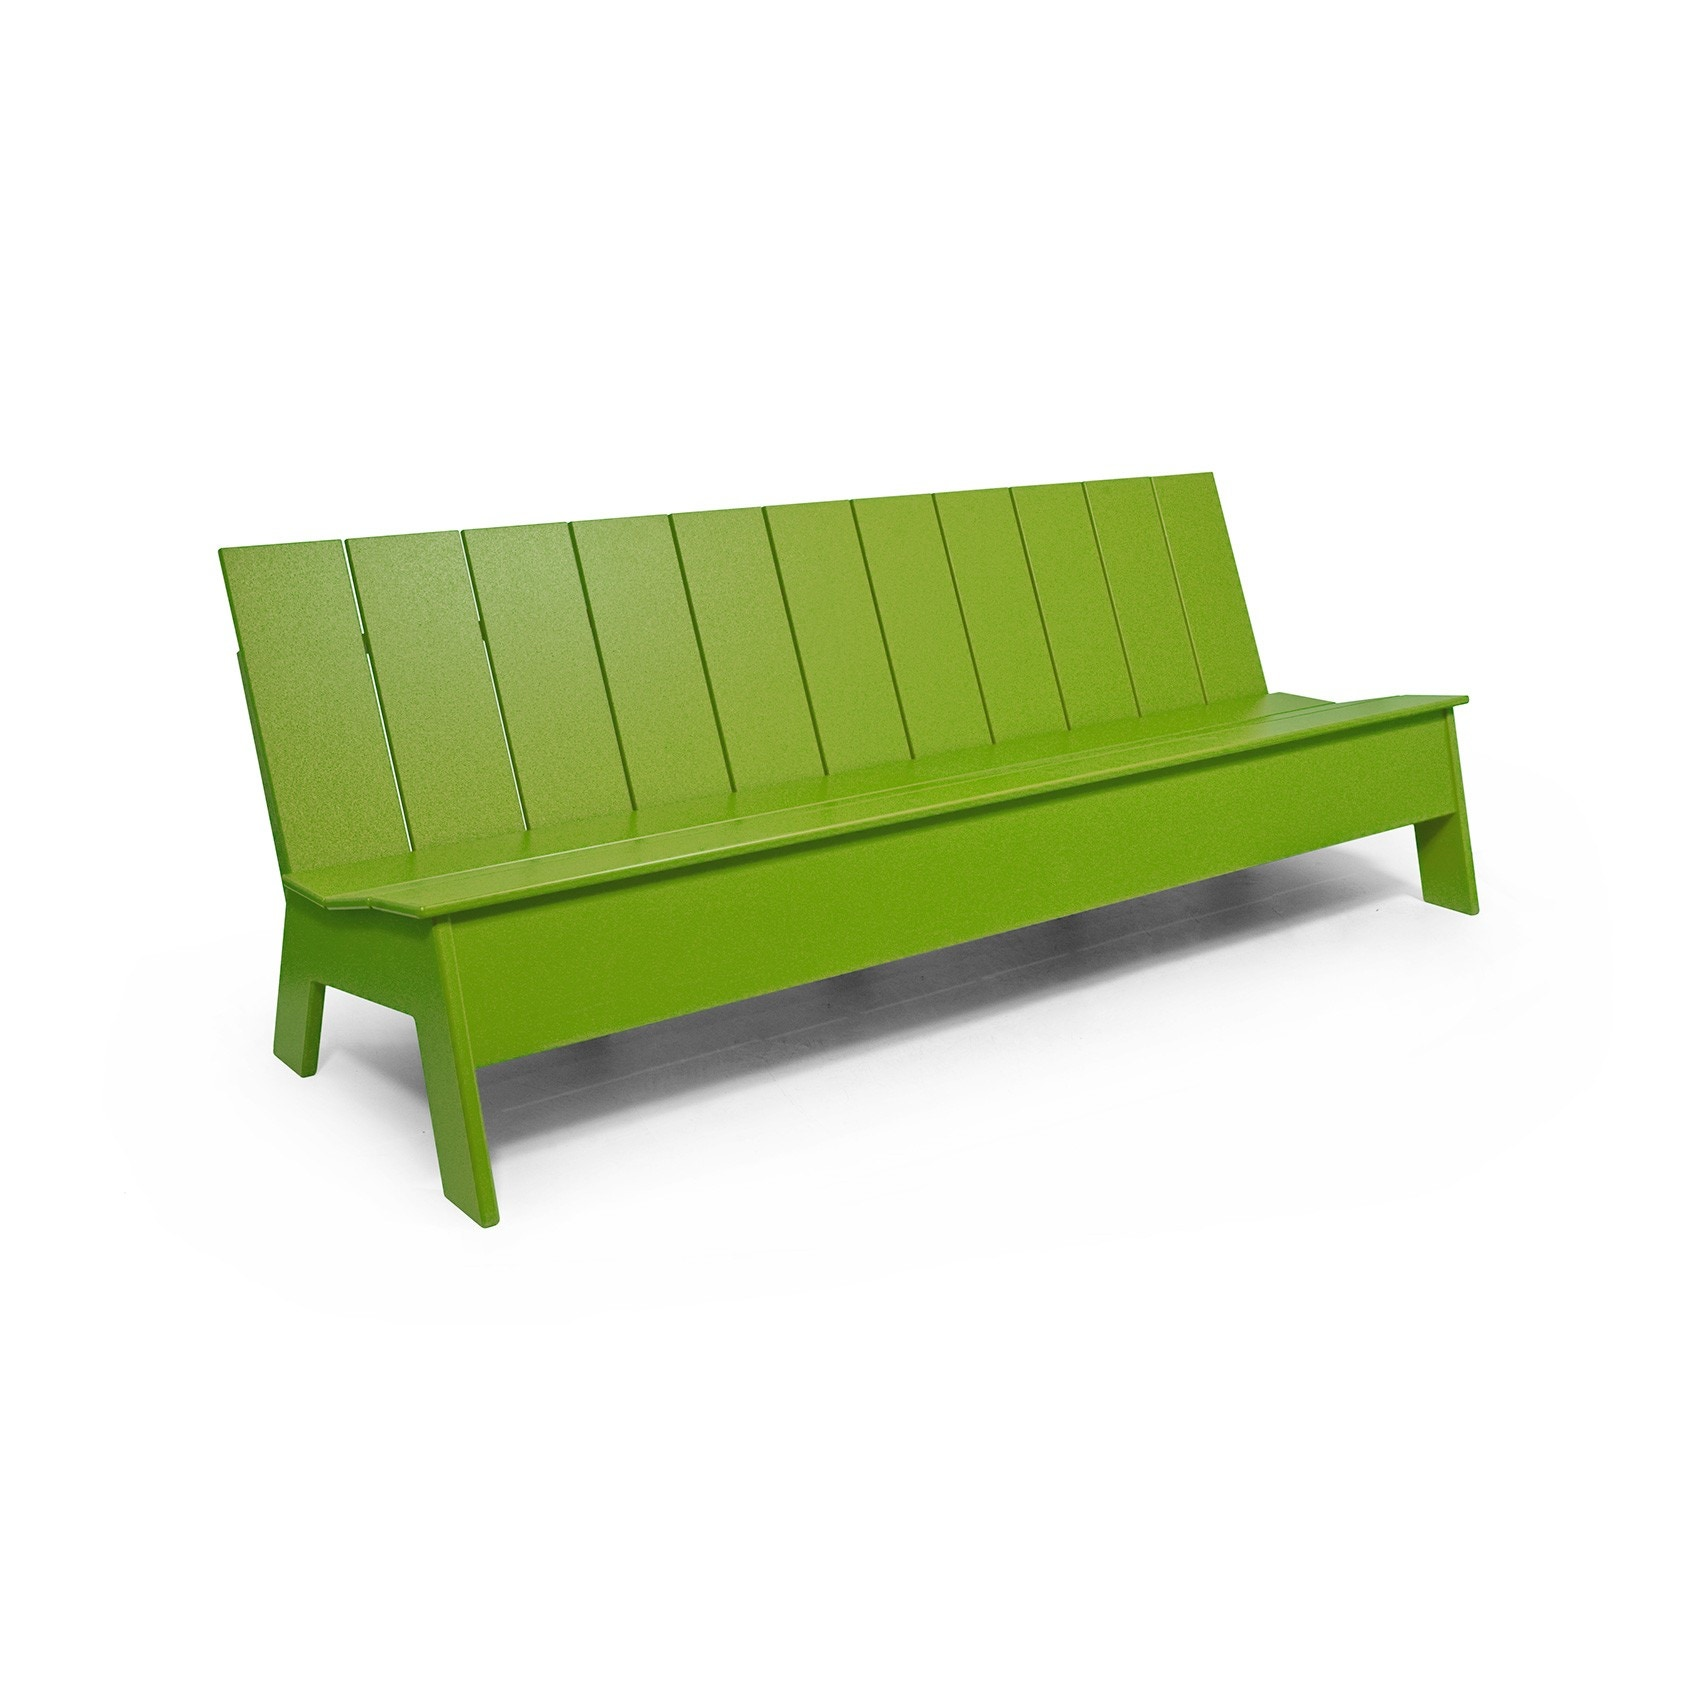 Loll Picket Low Back 7 Foot Outdoor Bench